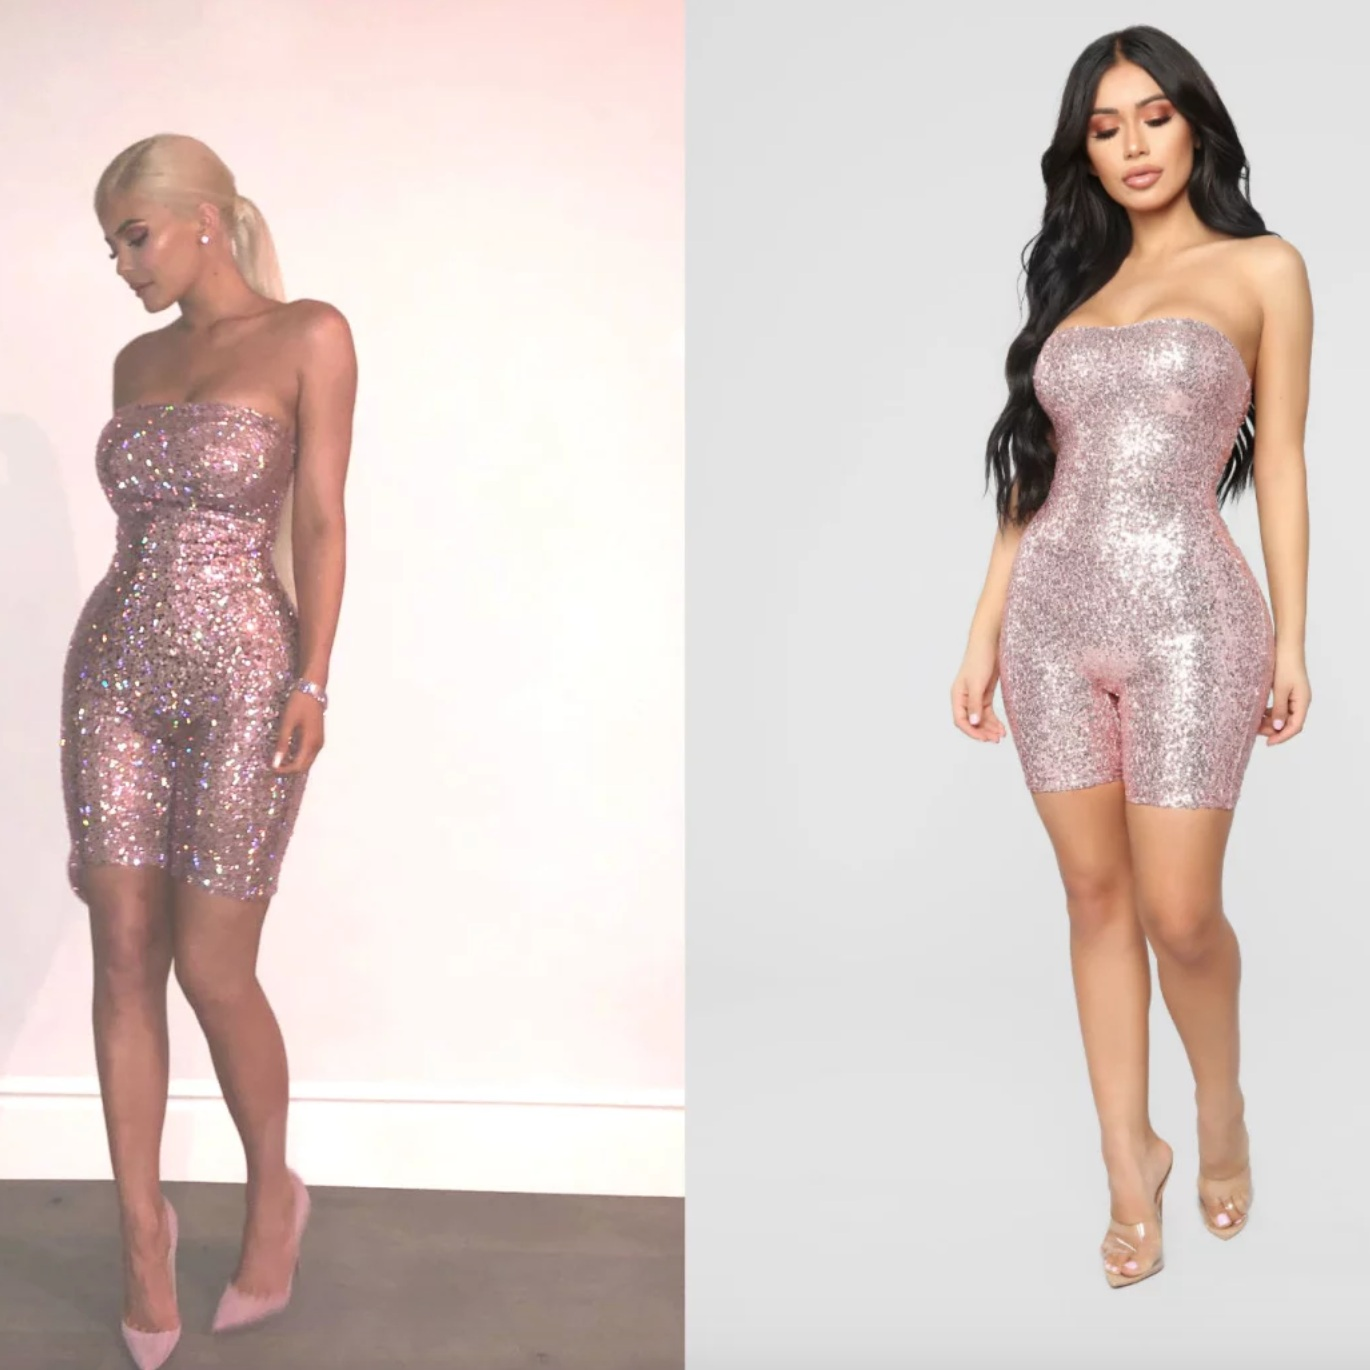 Are Ultrafast Retailers Like Fashion Nova Wittingly Ripping People Off? - Fashionista